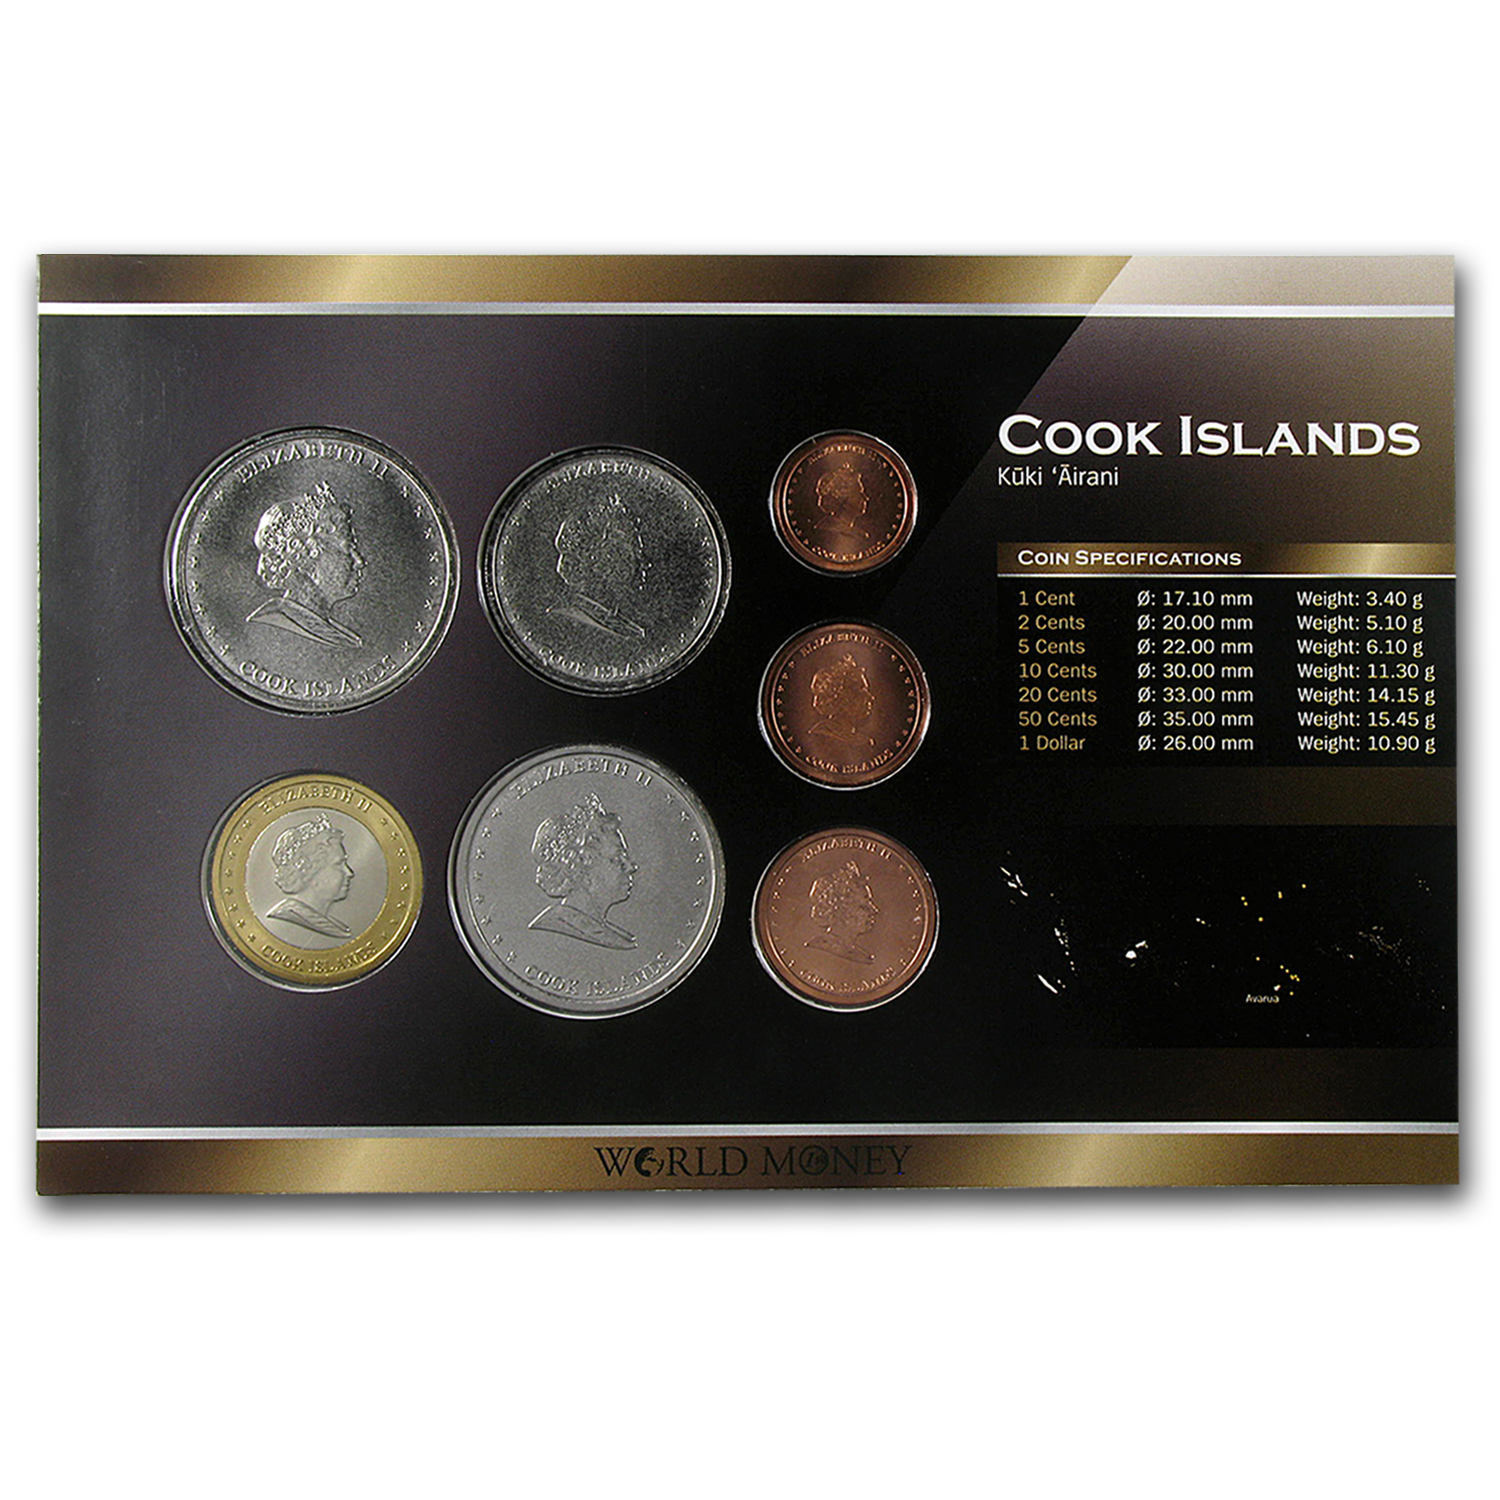 2010 Cook Islands 1 Cent-1 Dollar Coin Set Unc